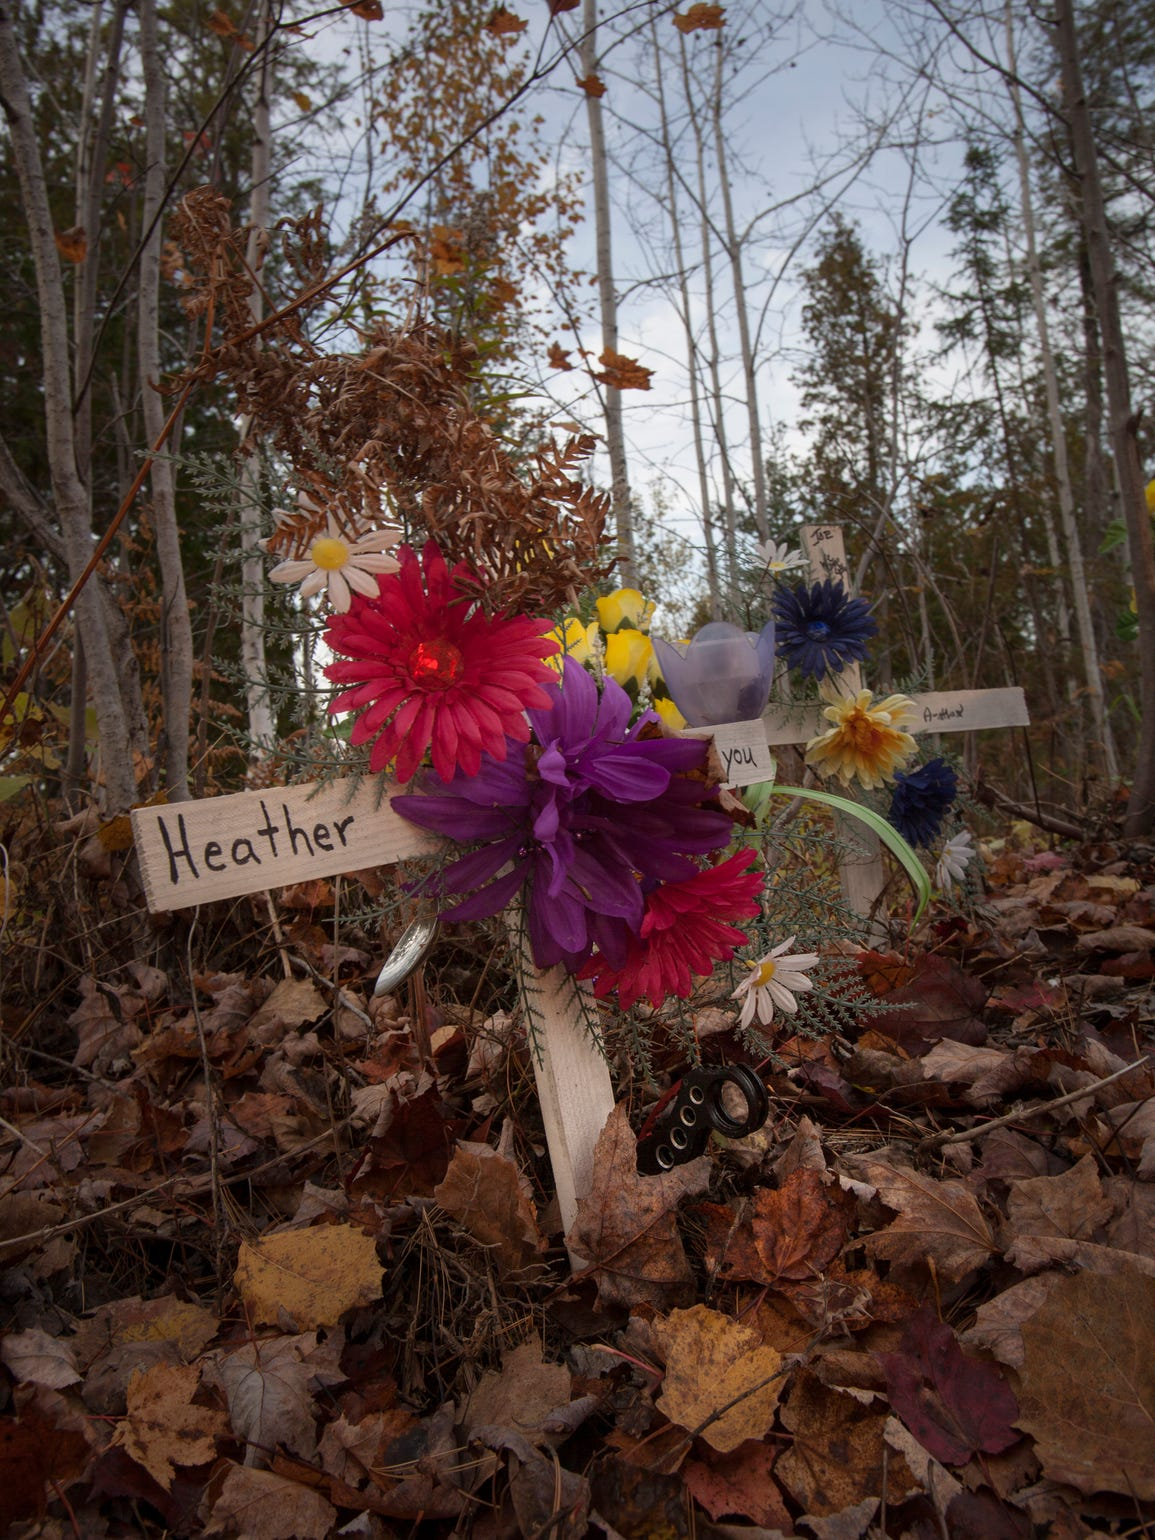 A makeshift memorial stands in honor of Jody Hutchinson,